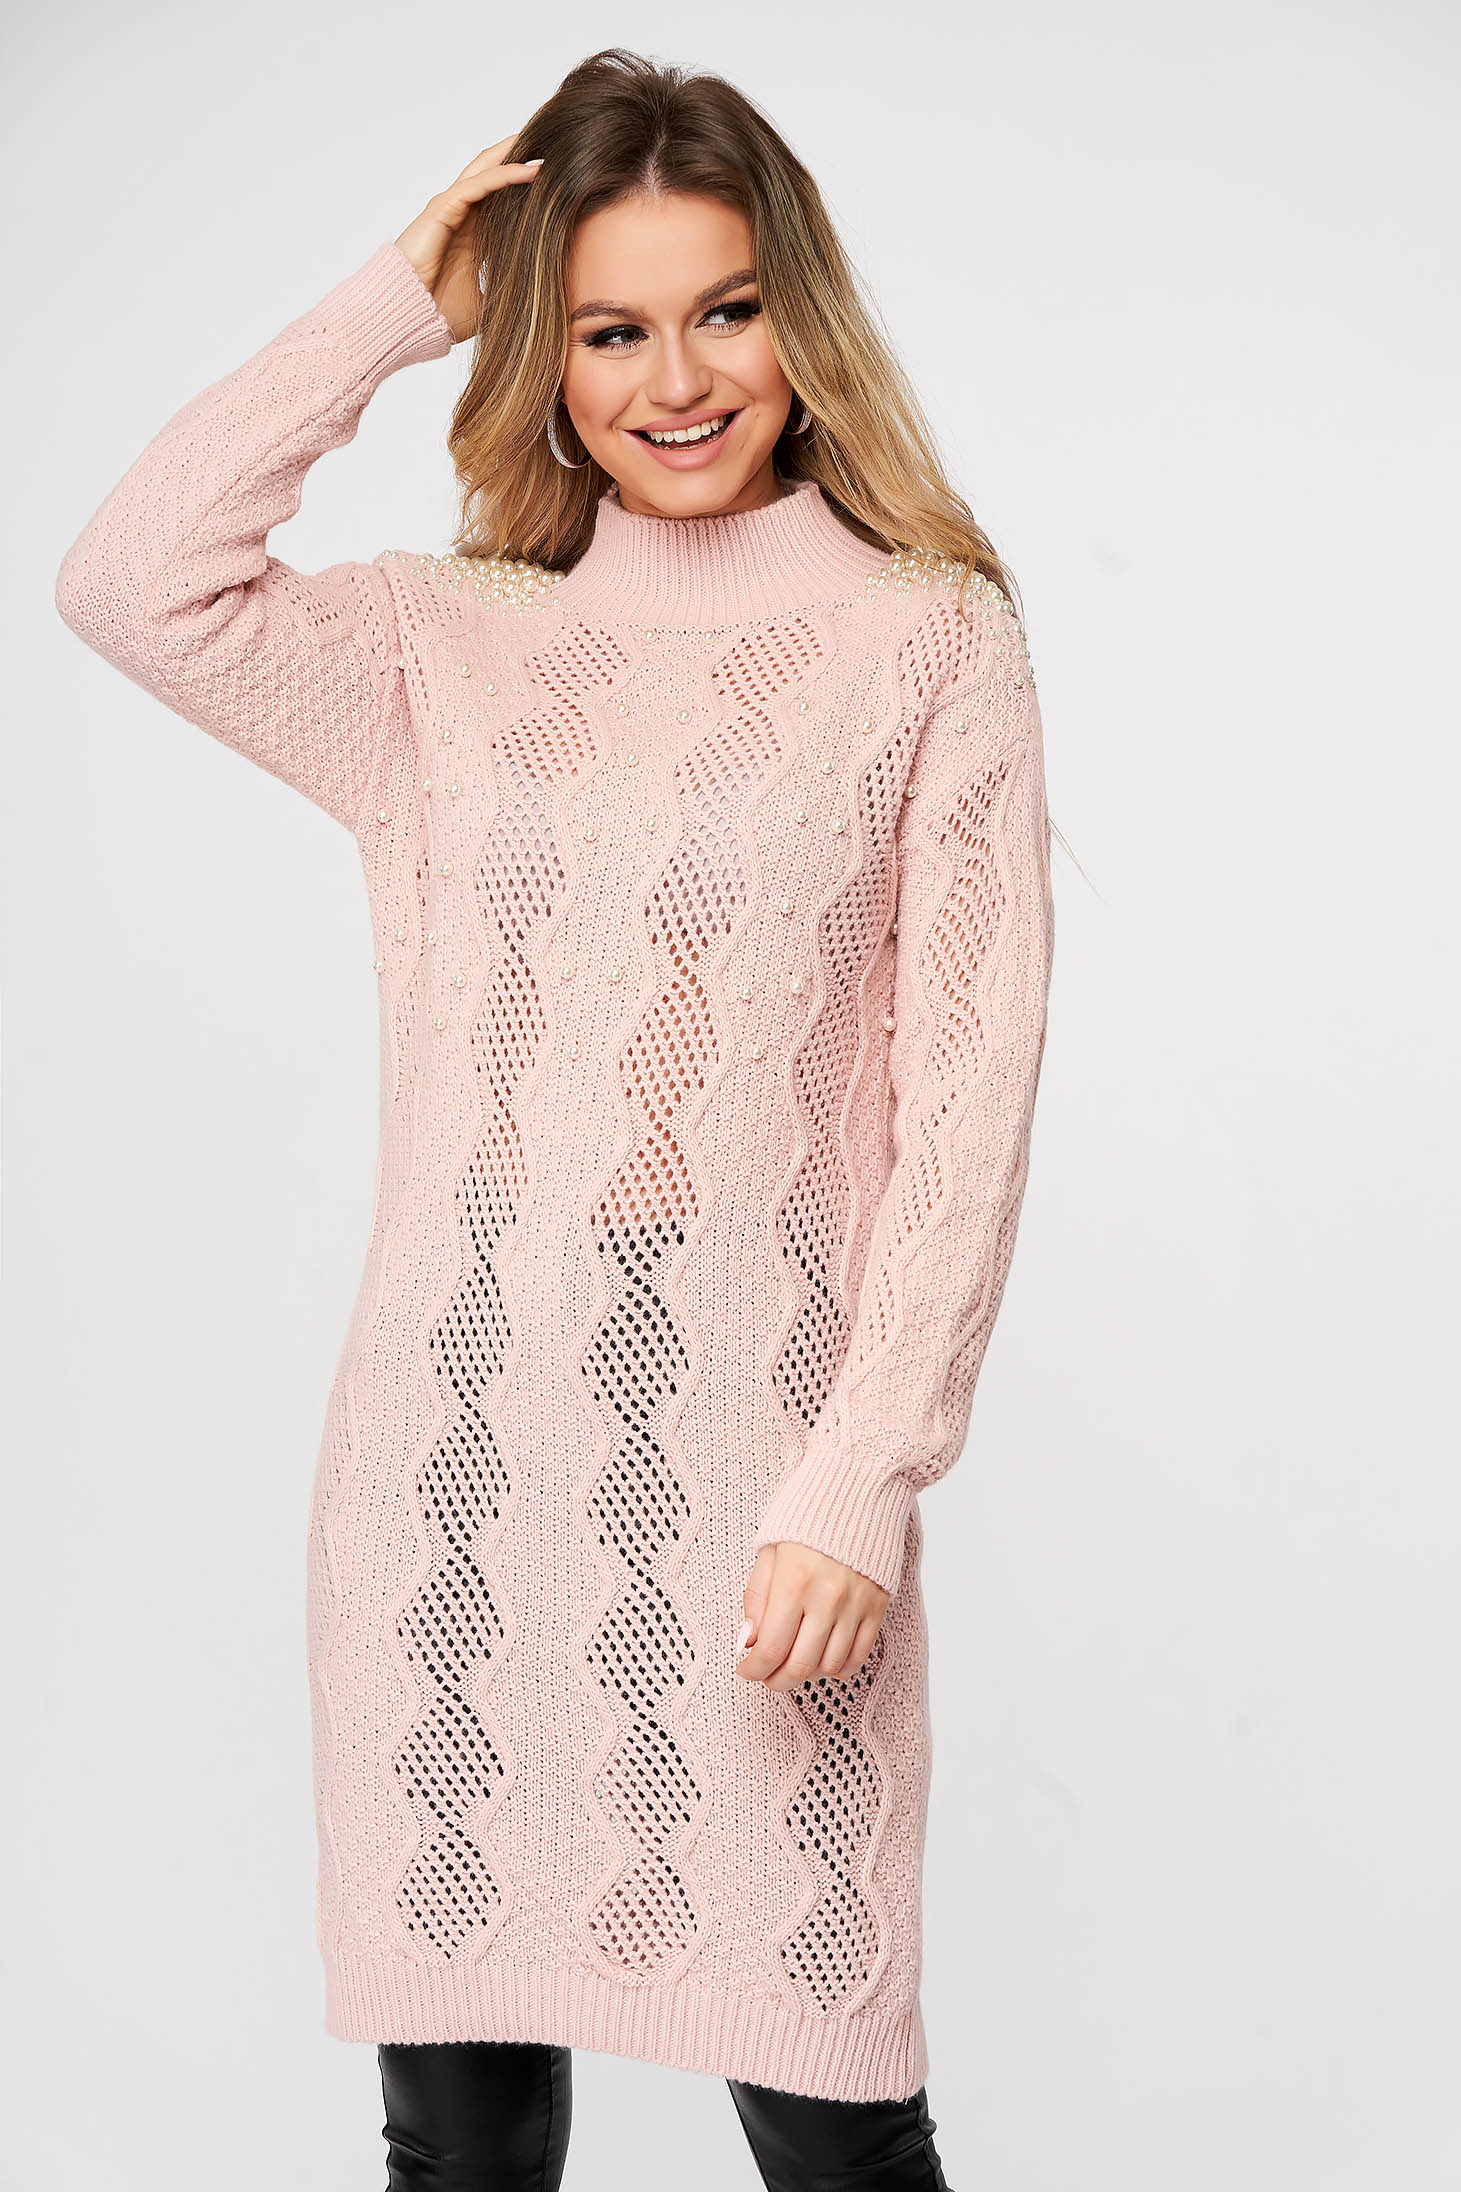 Lightpink knitted long sweater flared with pearls